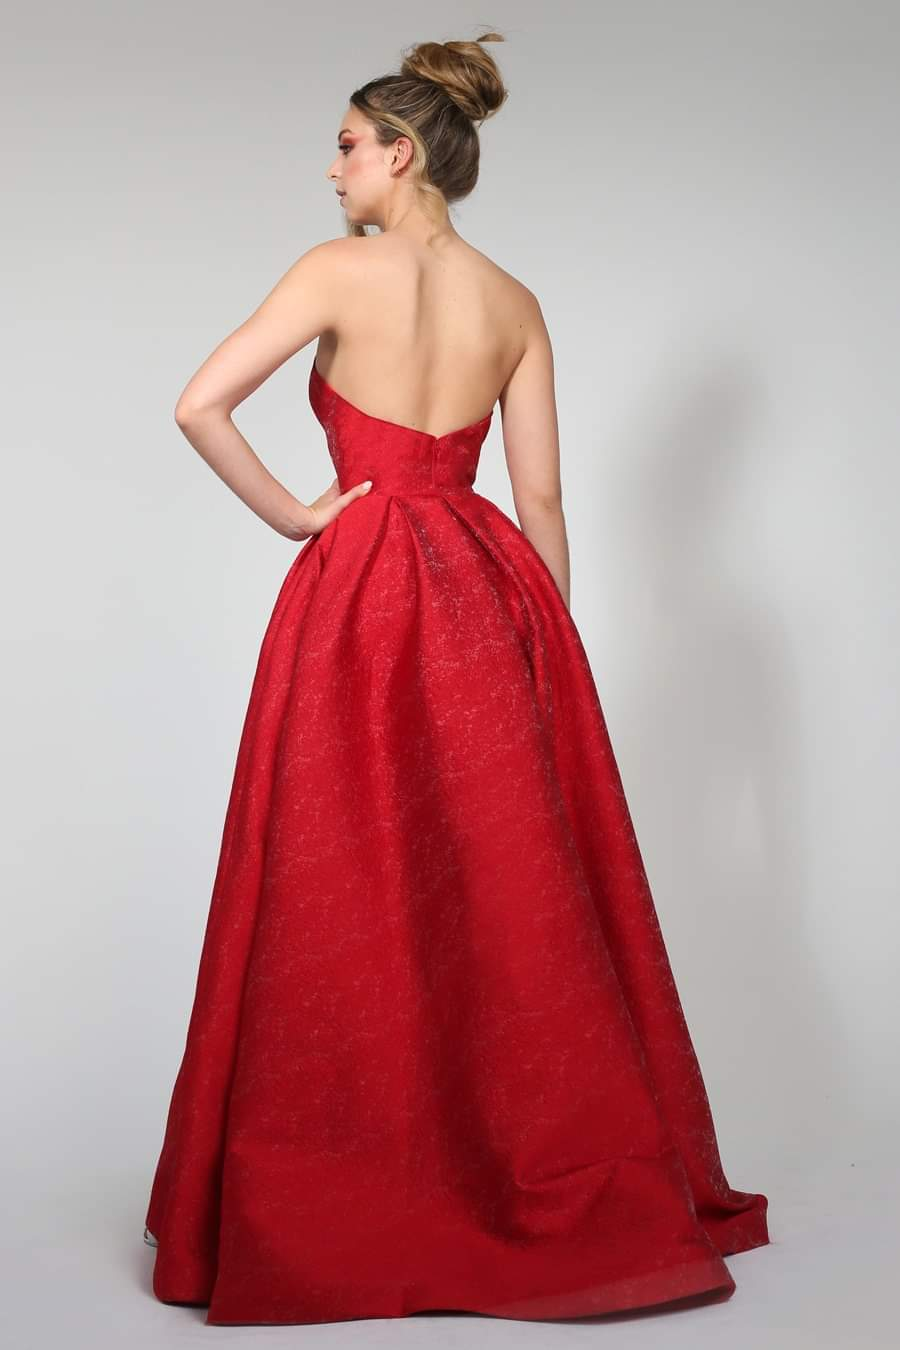 Tinaholy - TA661 Red Jacard fabric gown